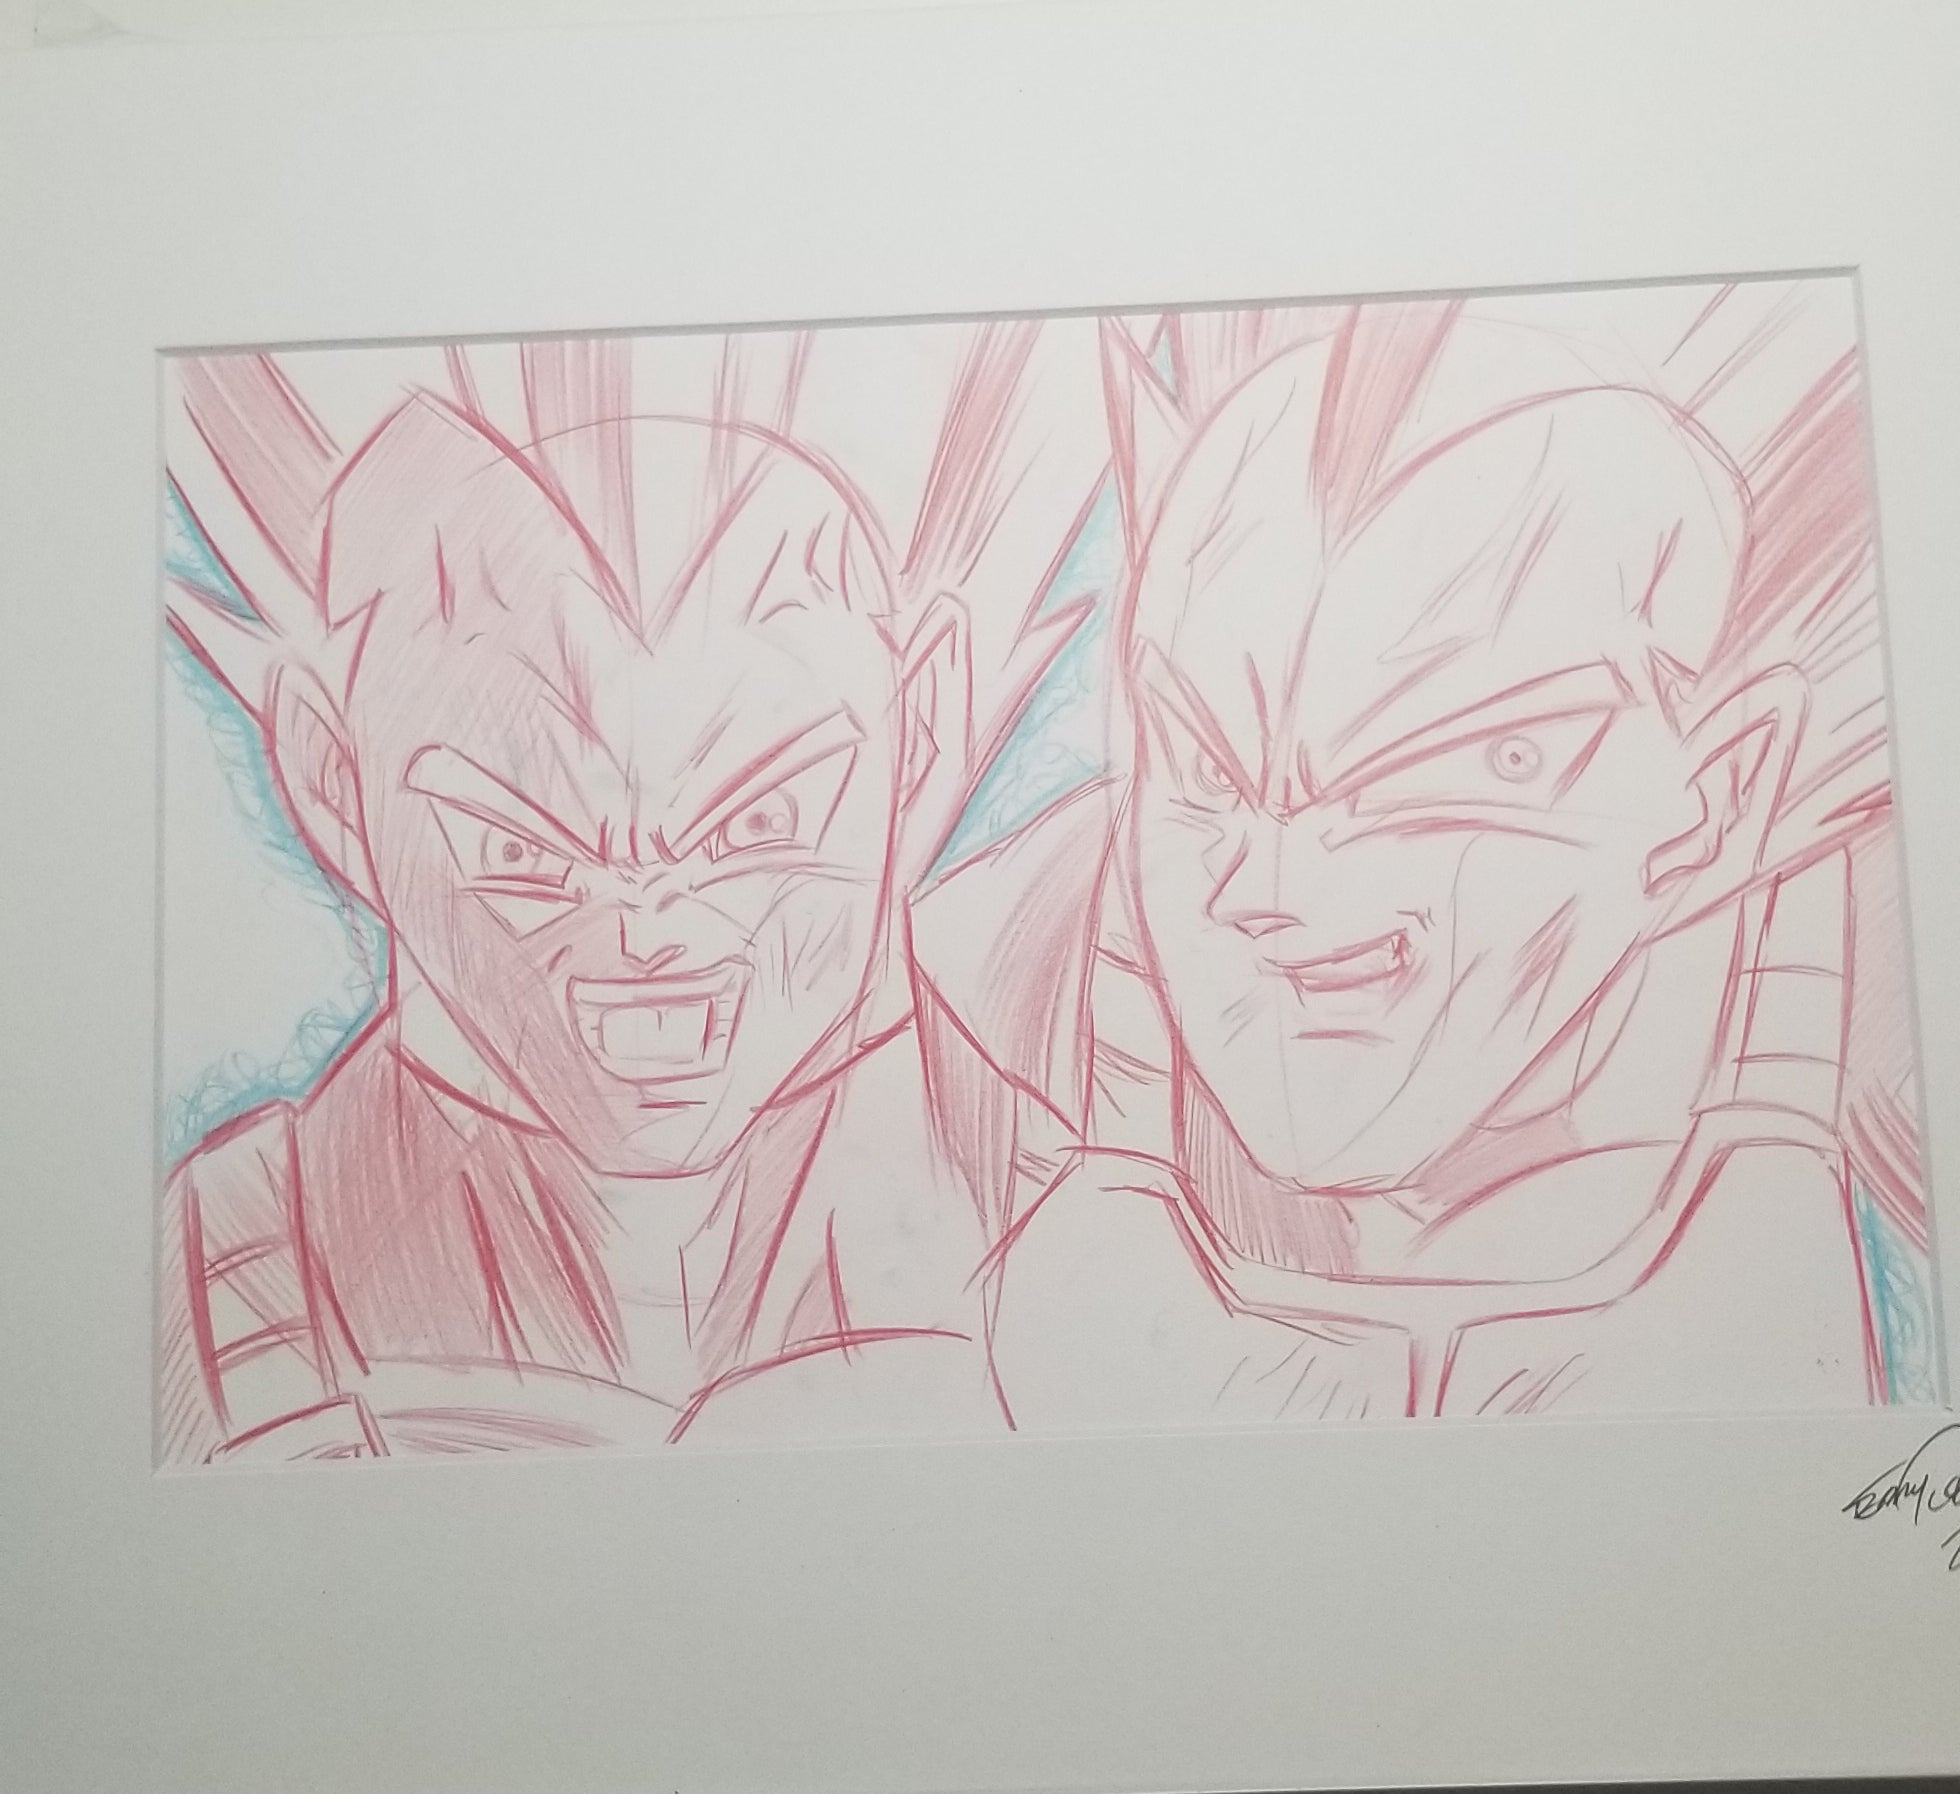 Original Art (Vegeta Sketch)